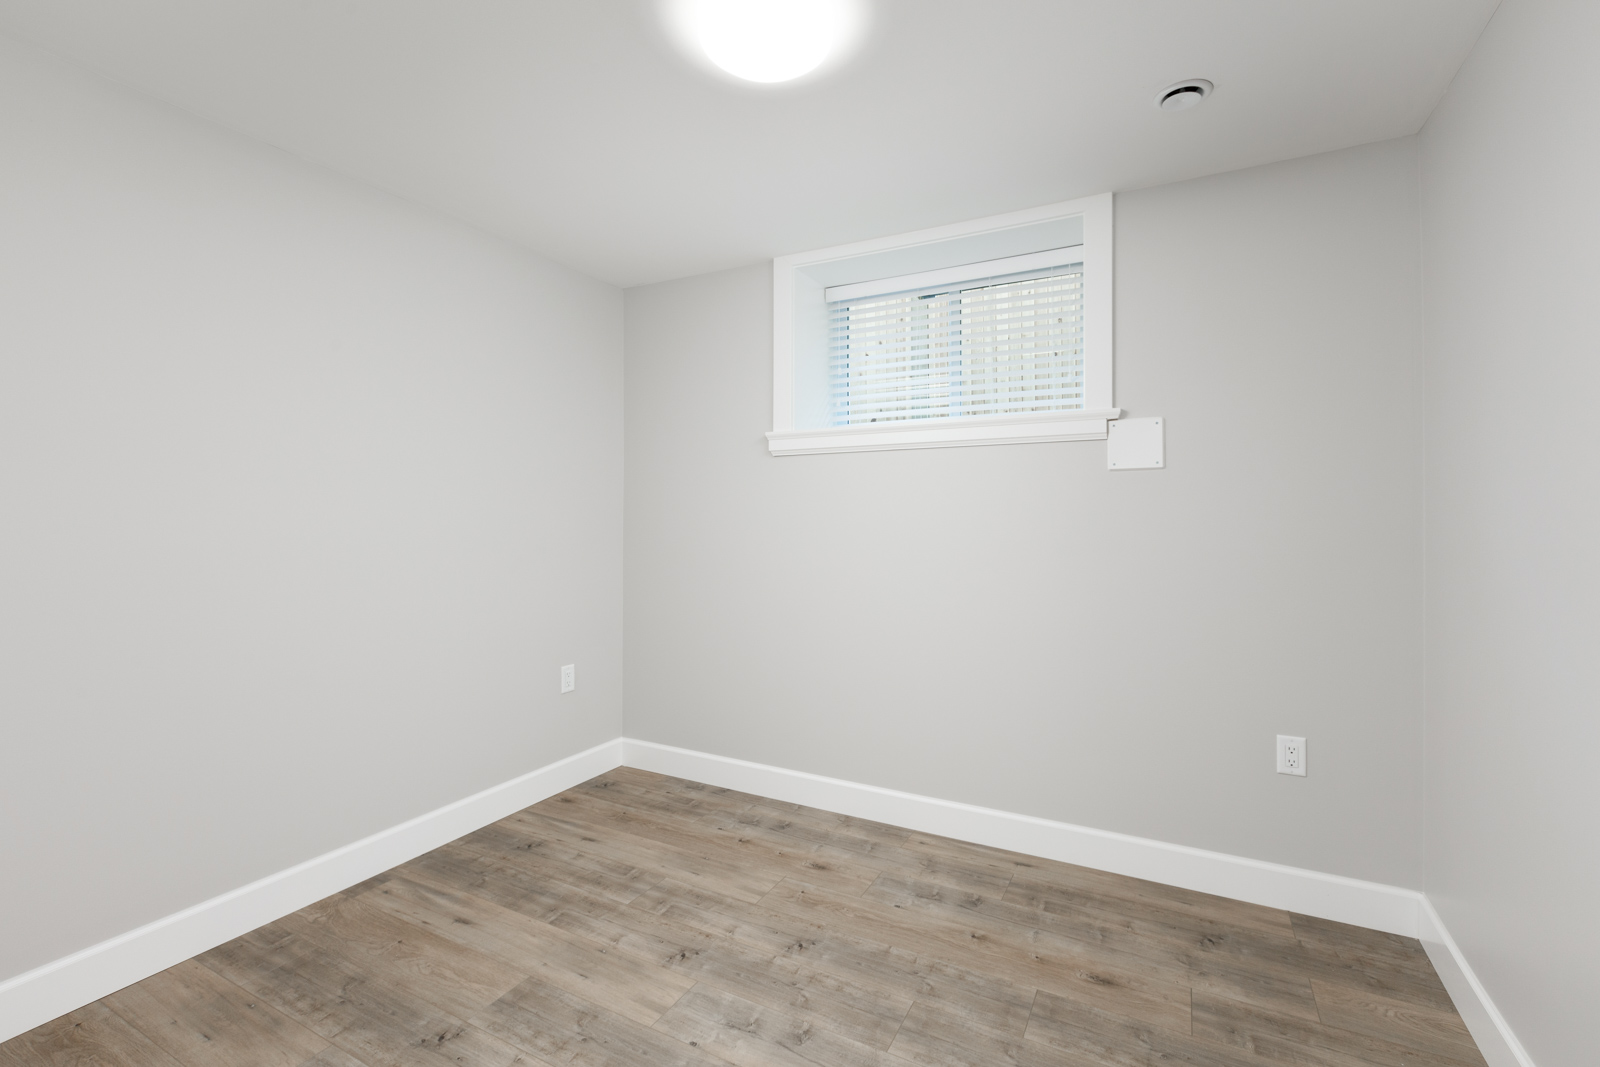 Empty light grey room inside Vancouver rental with ash hardwood and window.